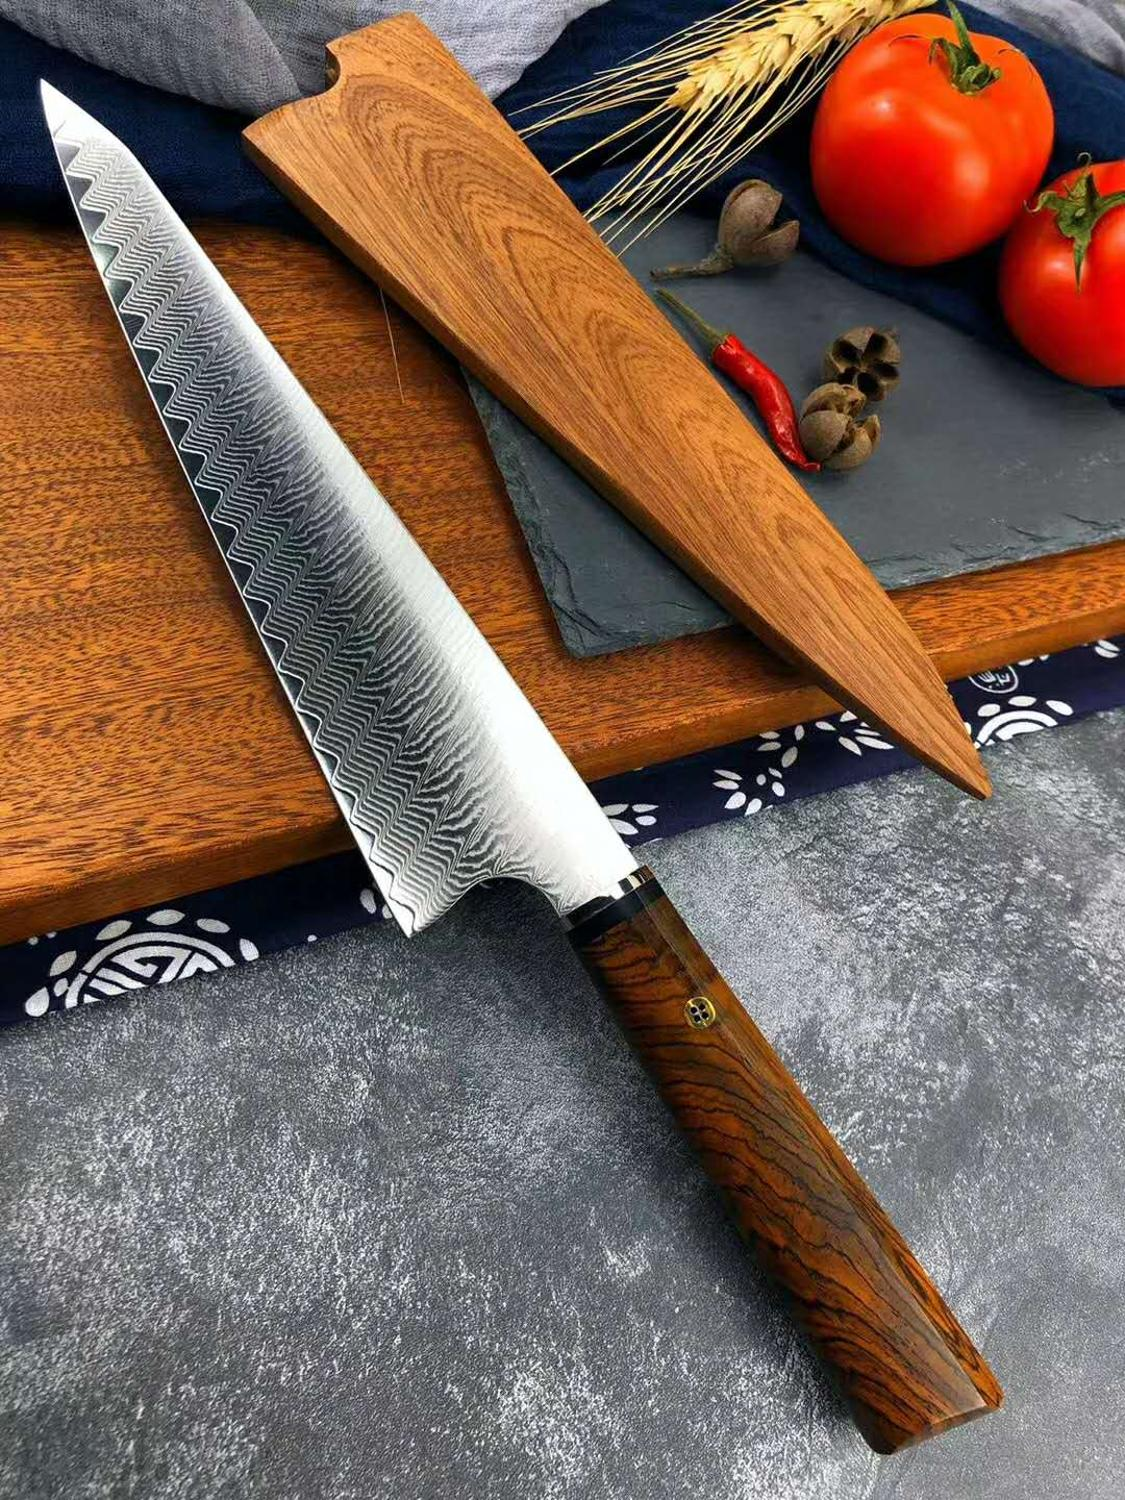 damascus chef knife vg10 damascus steel kichen knife tool japanese knife sharp cleaver knife Cooking knife set 6